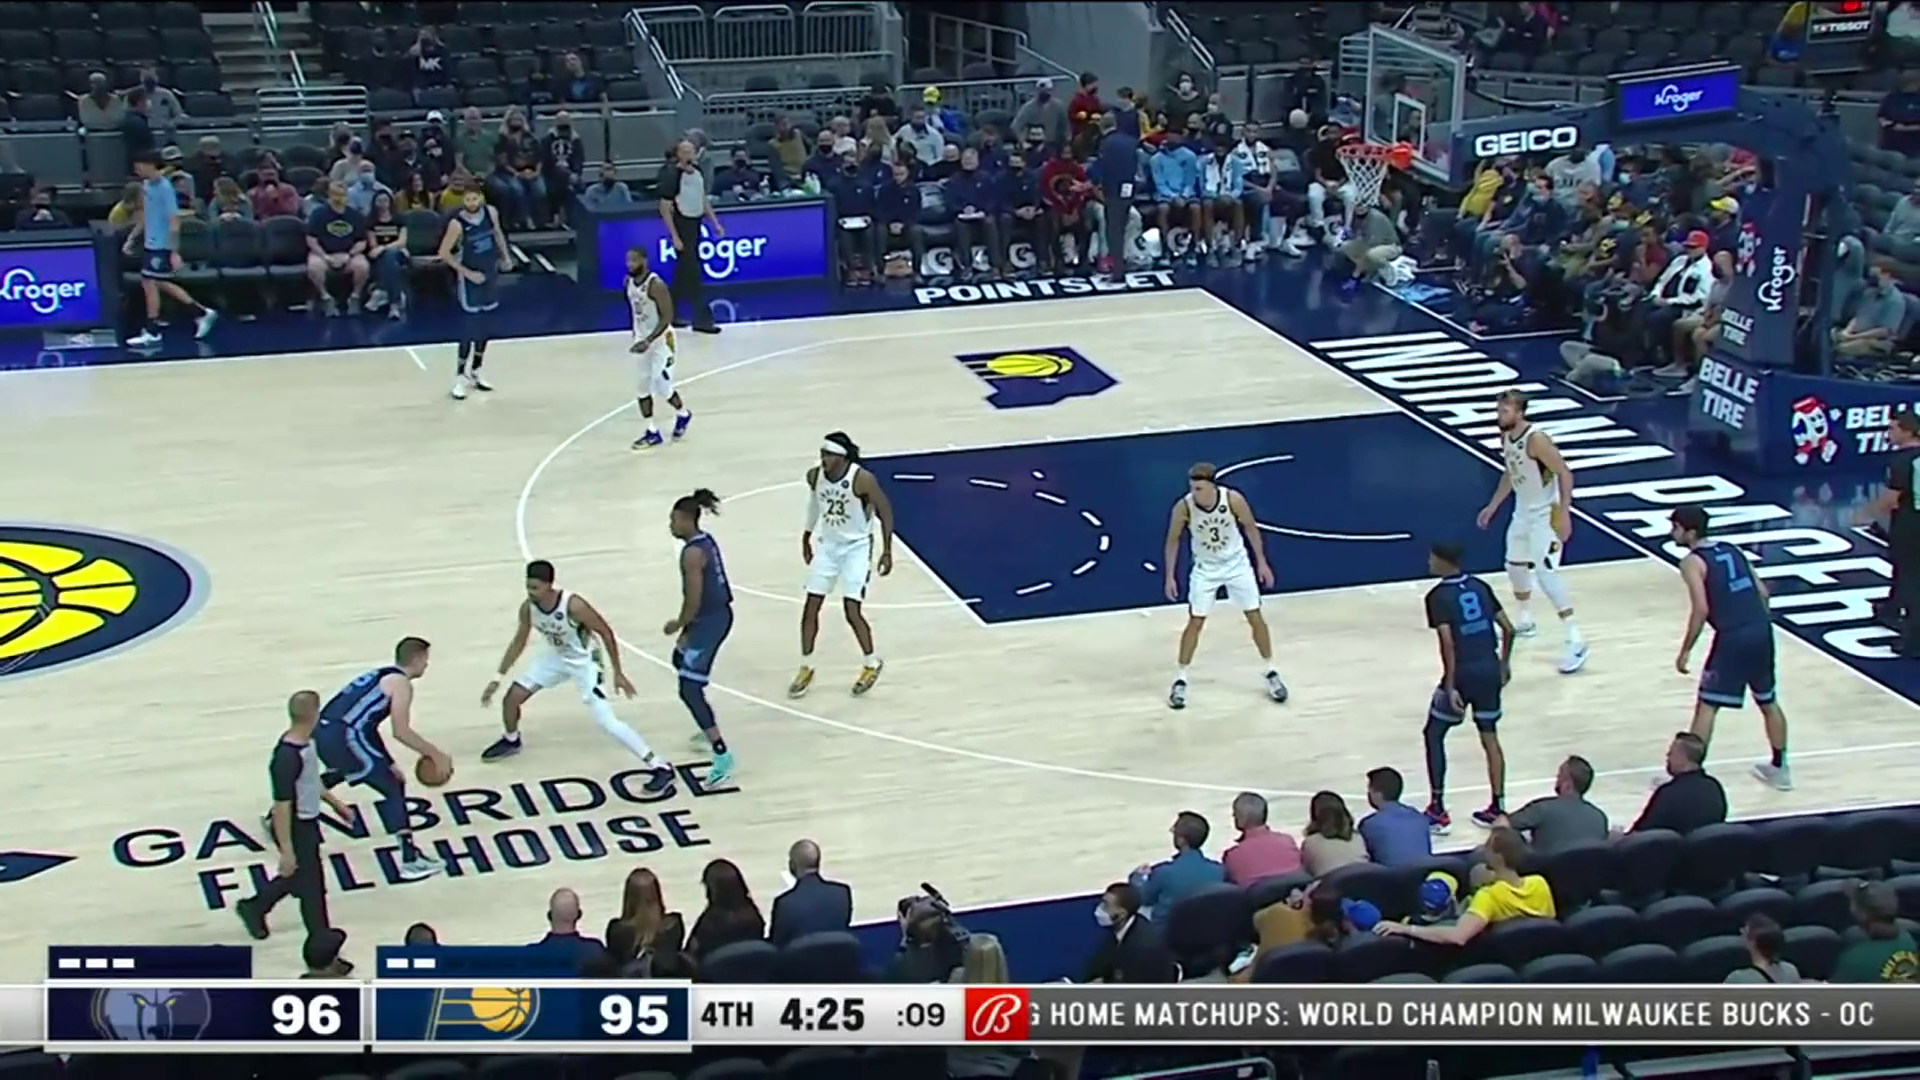 Sam Merrill 30 points @ Pacers 10.13.21